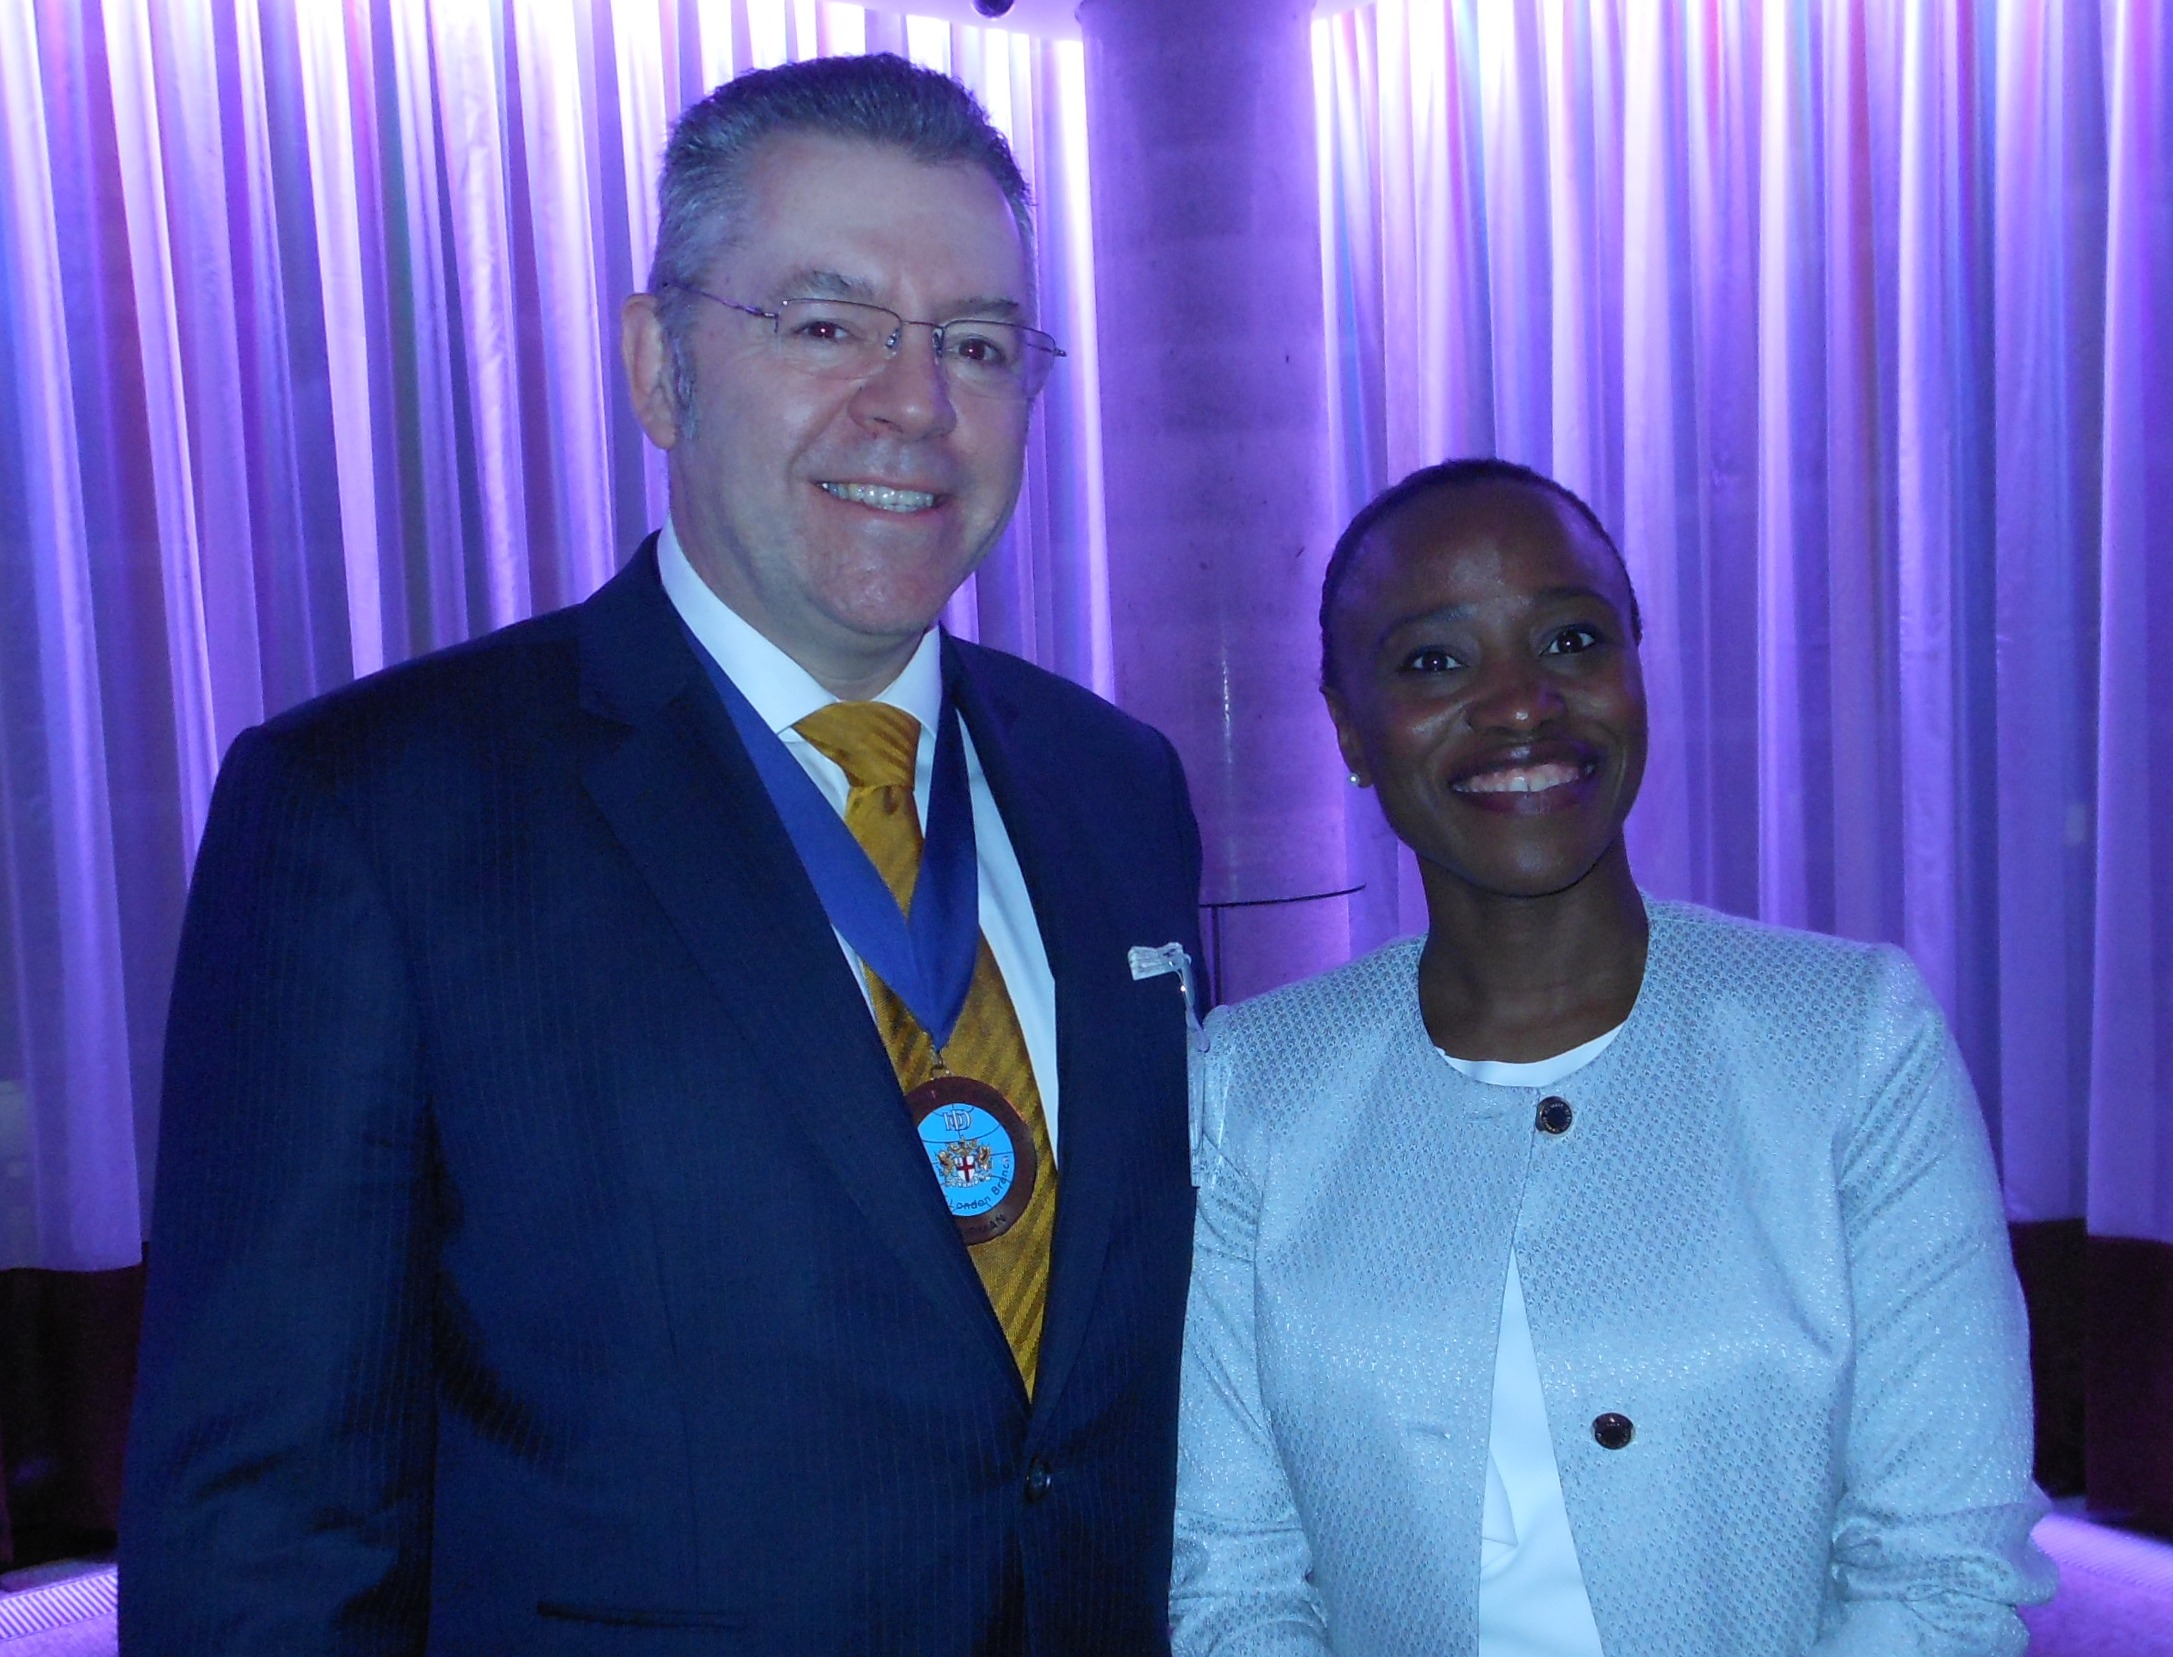 President of the CICCGB, Mrs Kady Doumbia & David Stringer-Lamarre